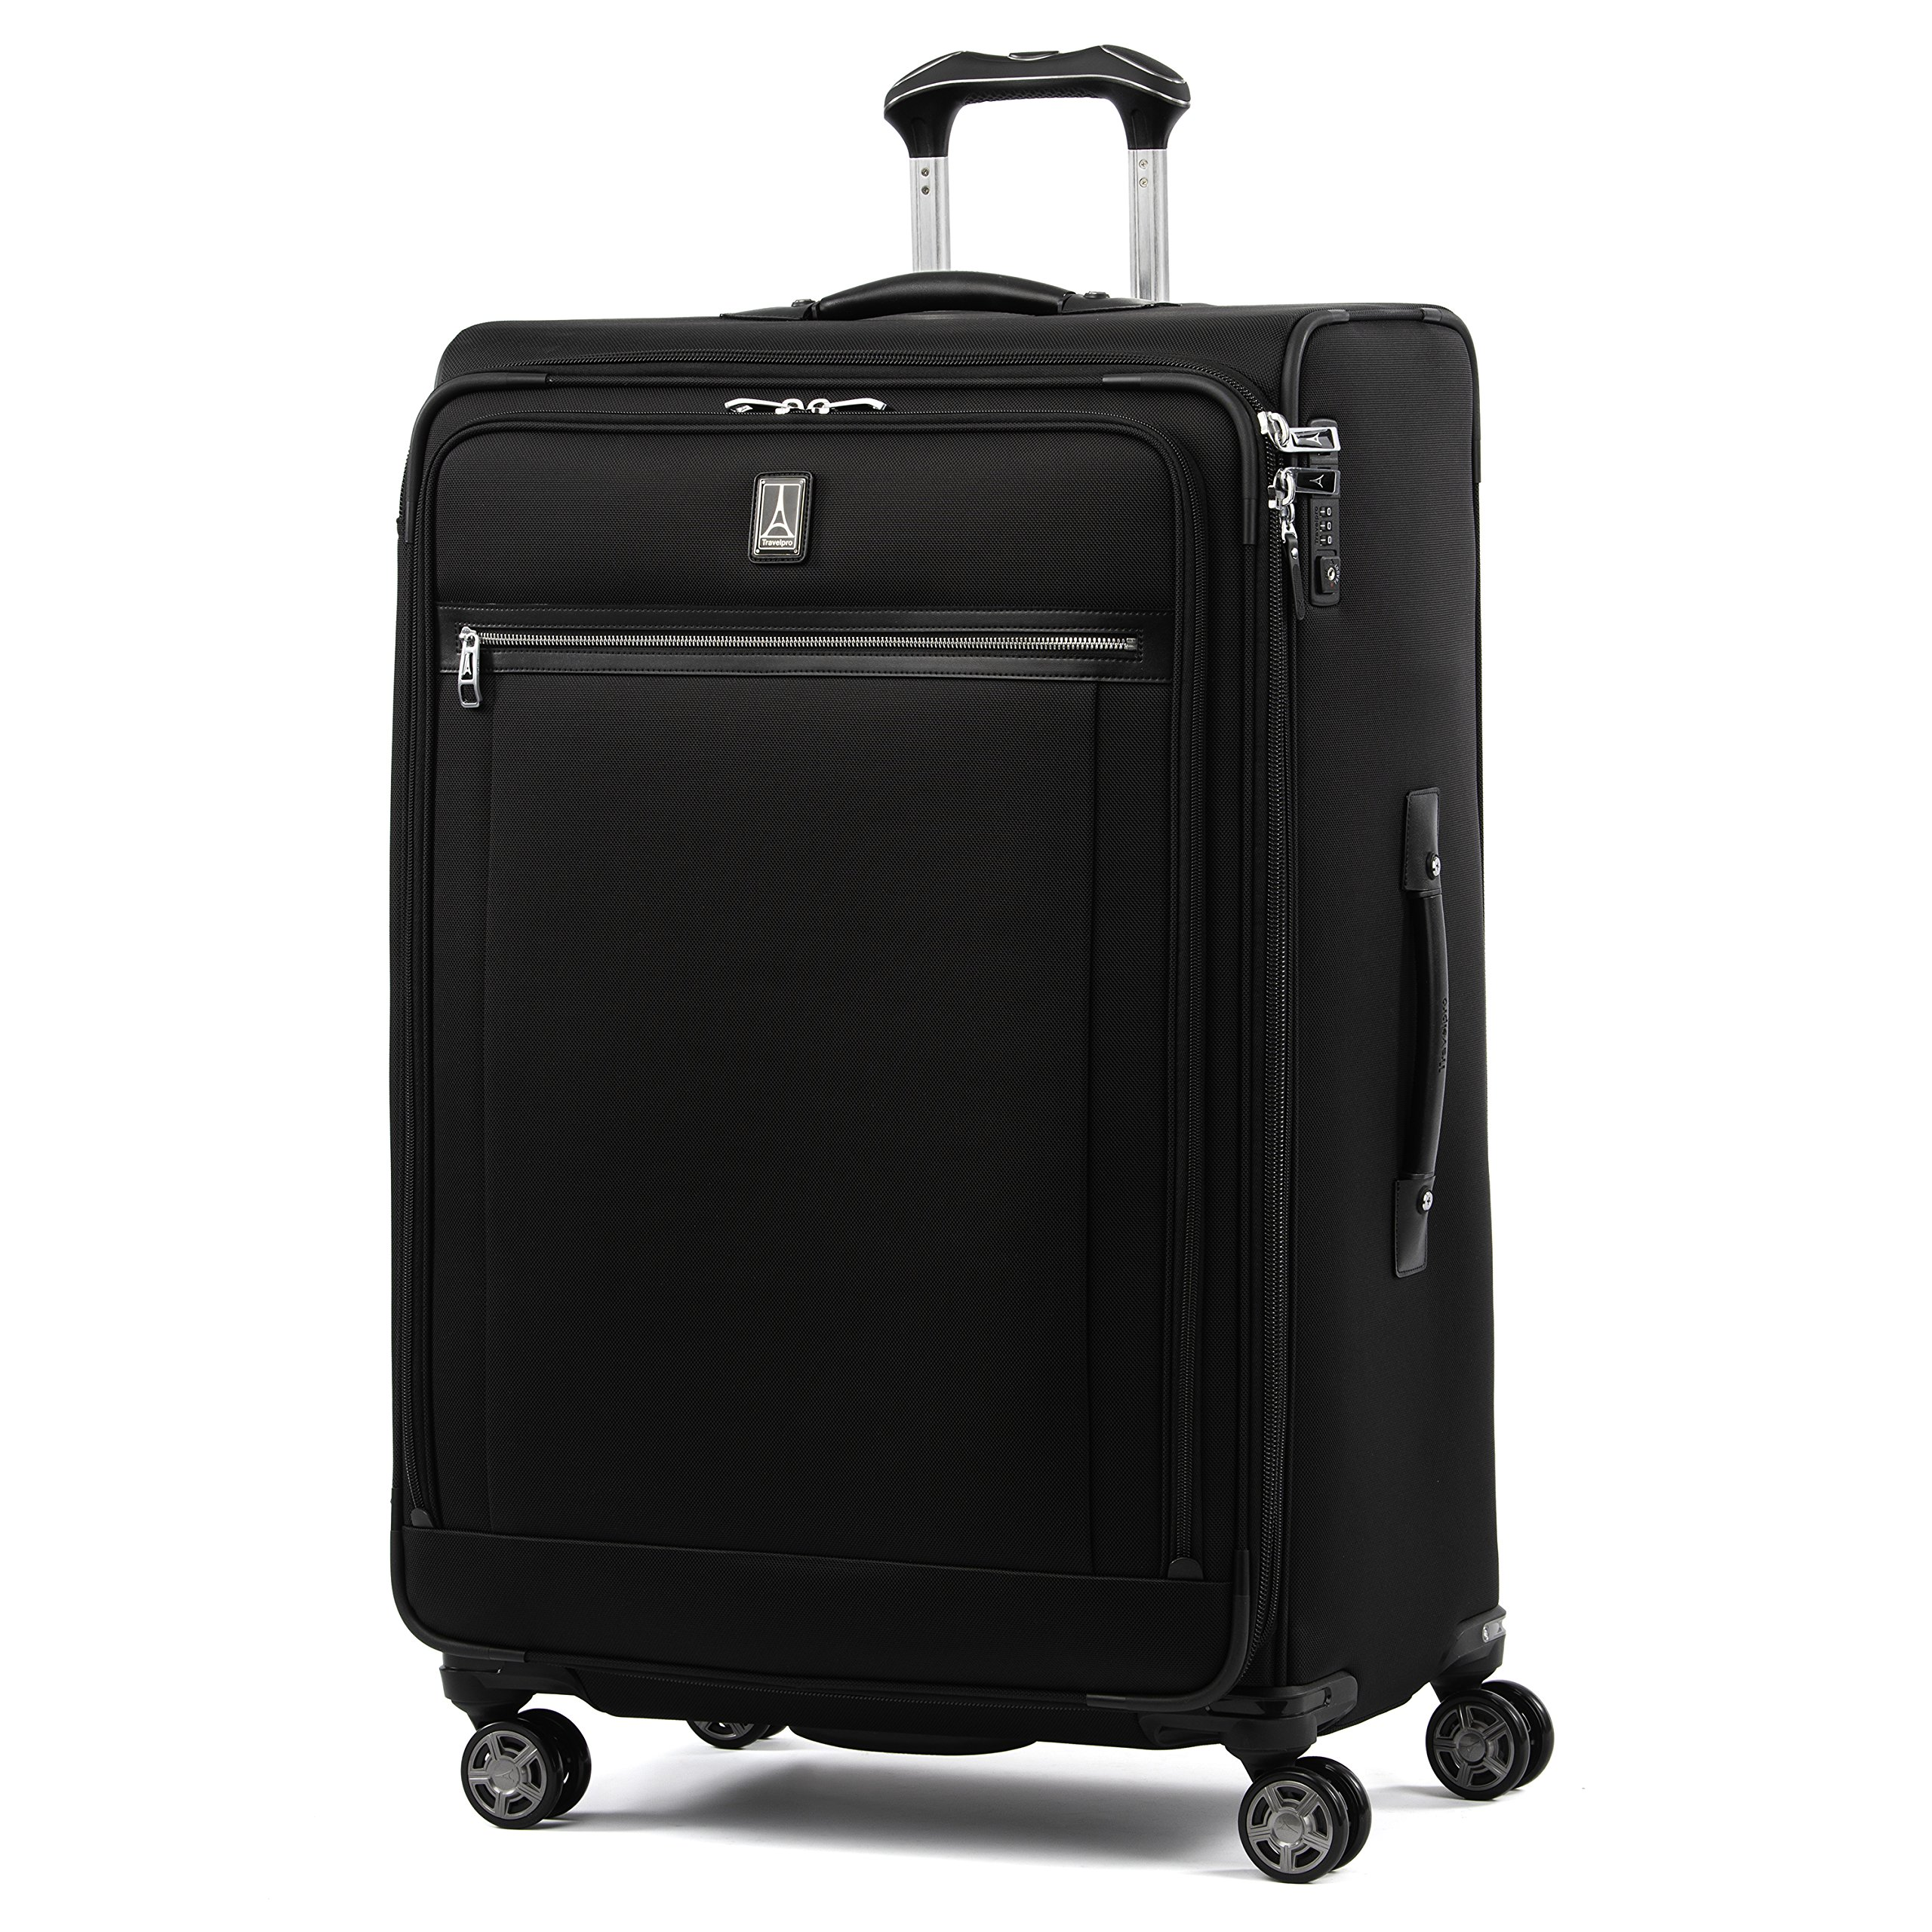 Travelpro Luggage Platinum Elite 29'' Expandable Spinner Suitcase w/Suiter, Shadow Black